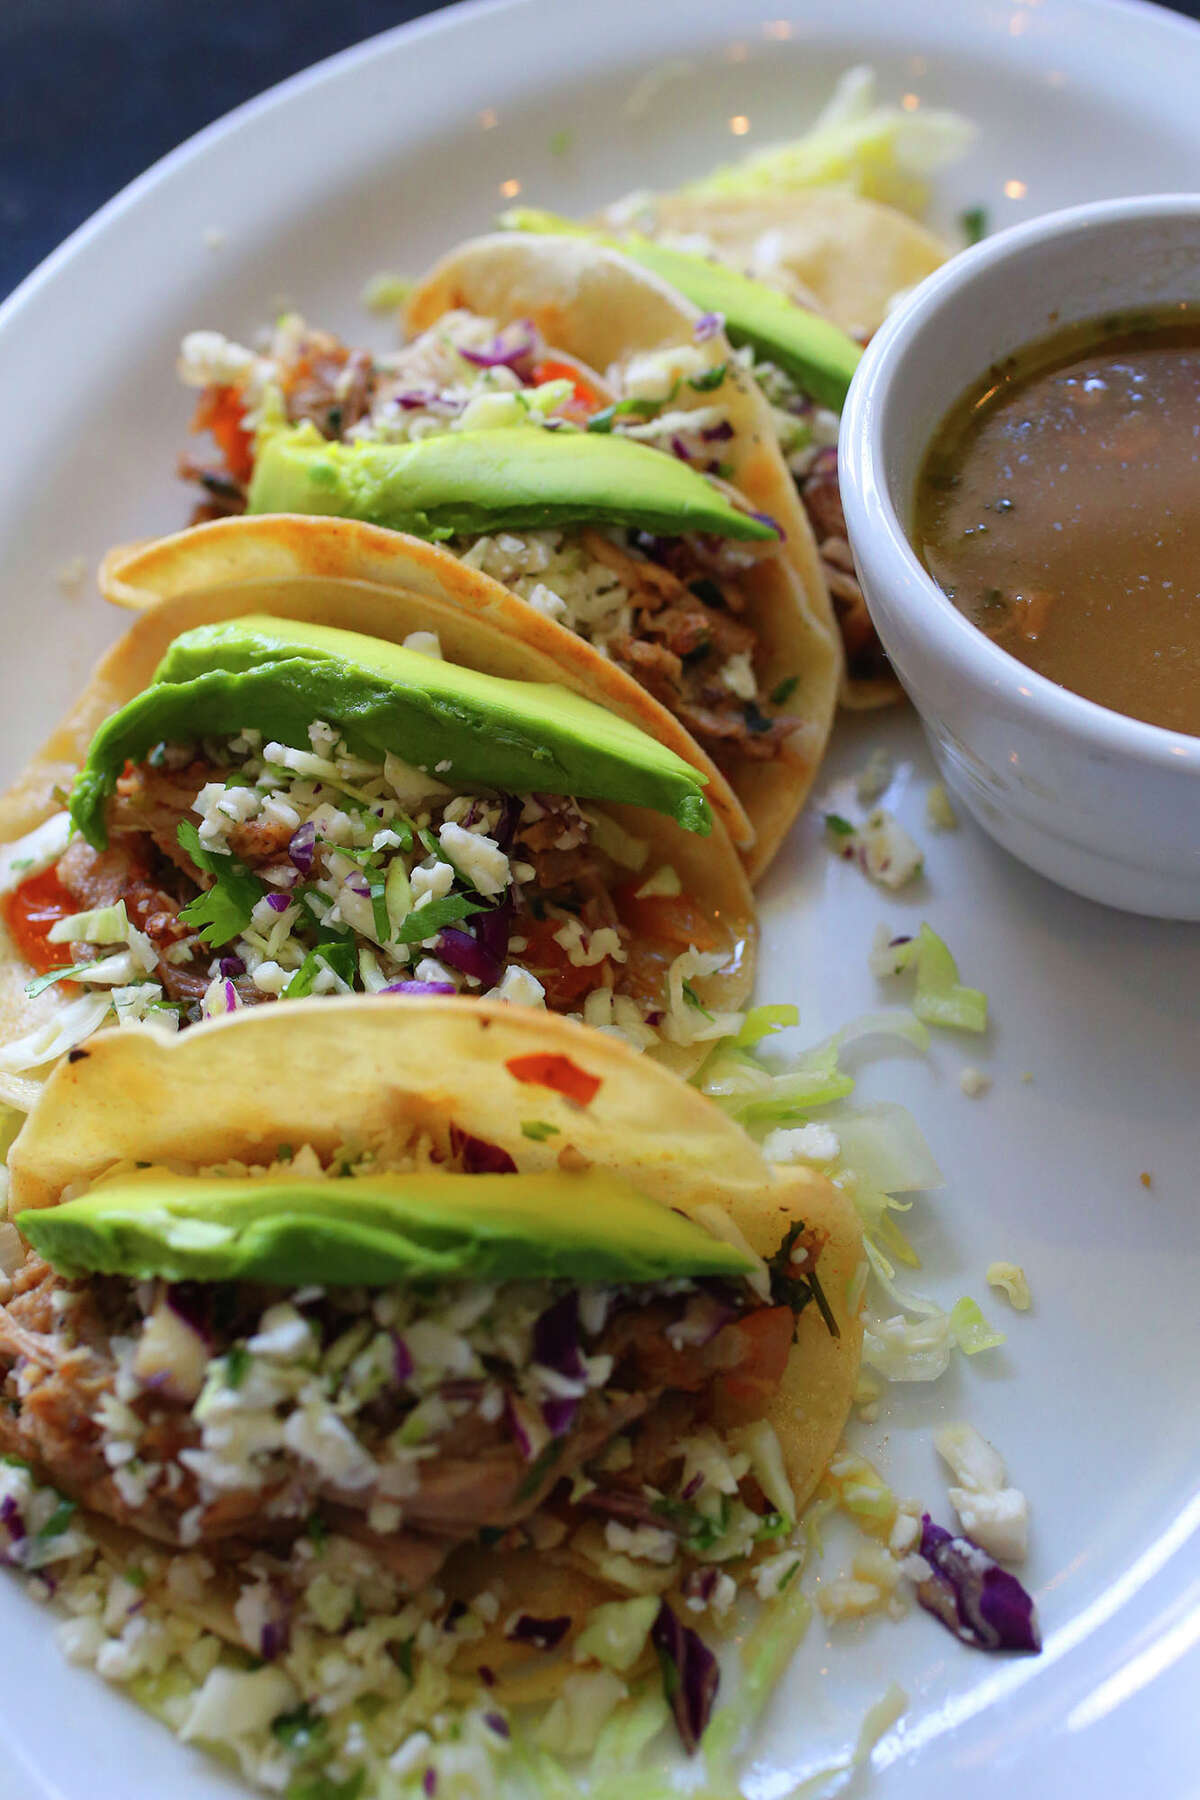 File photo of tacos. The owners of restaurant chain Don Pablo's Mexican Kitchen filed for bankruptcy Monday in San Antonio.